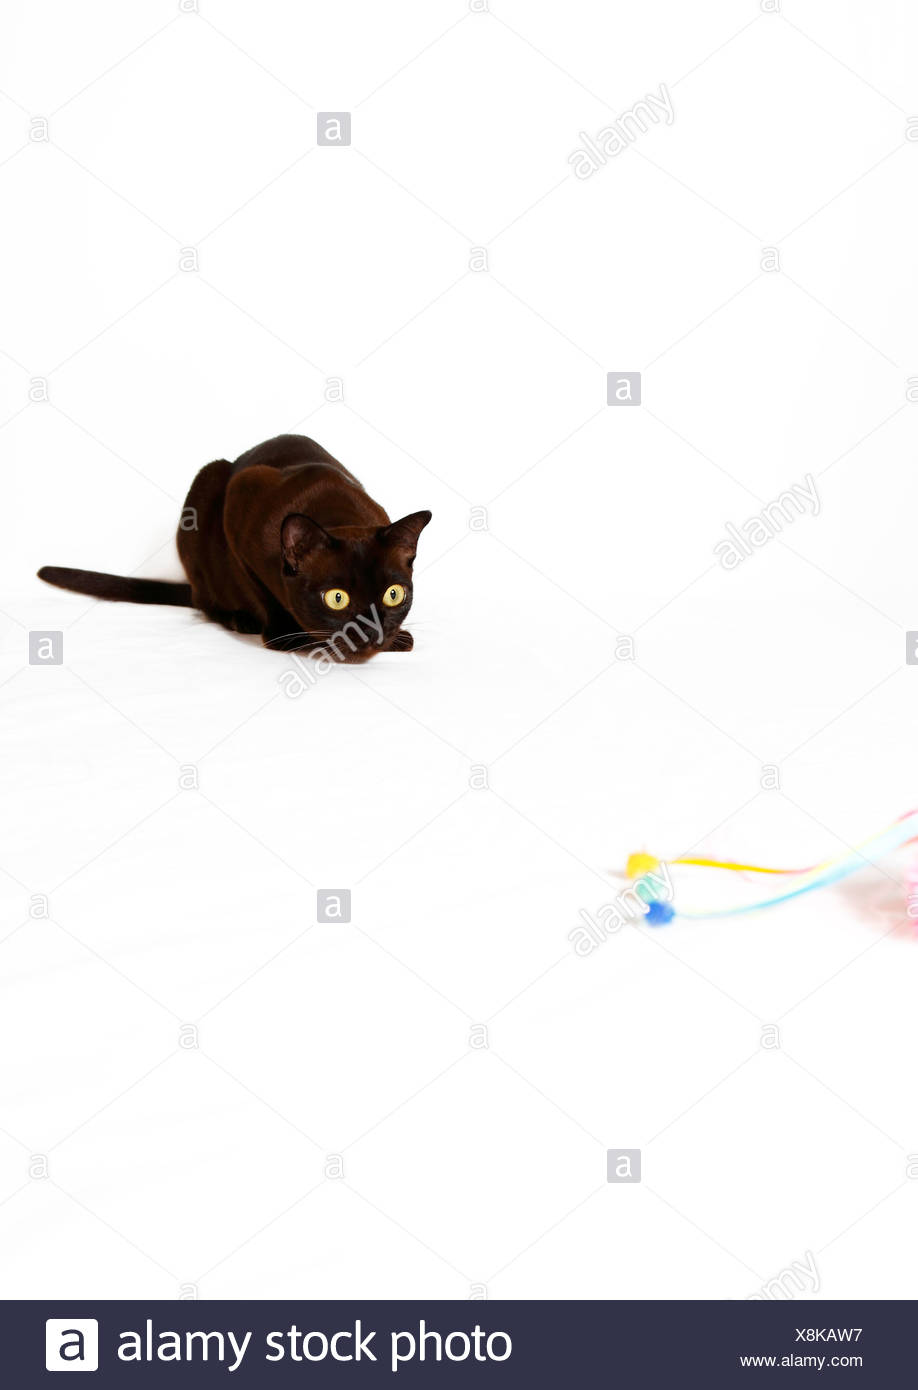 Burmese cat preying on cat toy Stock Photo